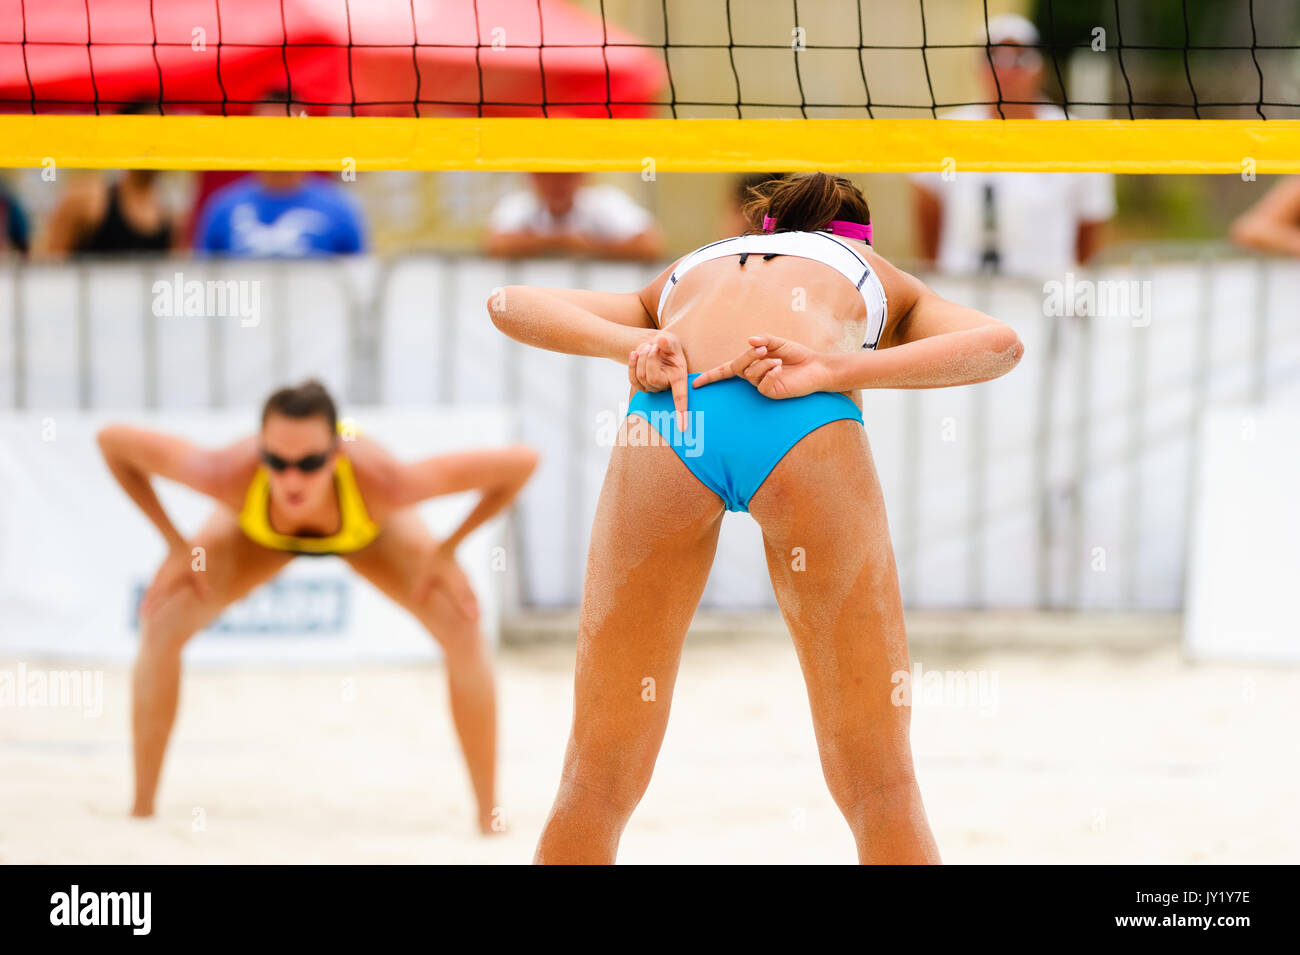 Volleyball player is a female beach volleyball beach player giving hand signals to her team mate while she faces her opponent across the net. - Stock Image